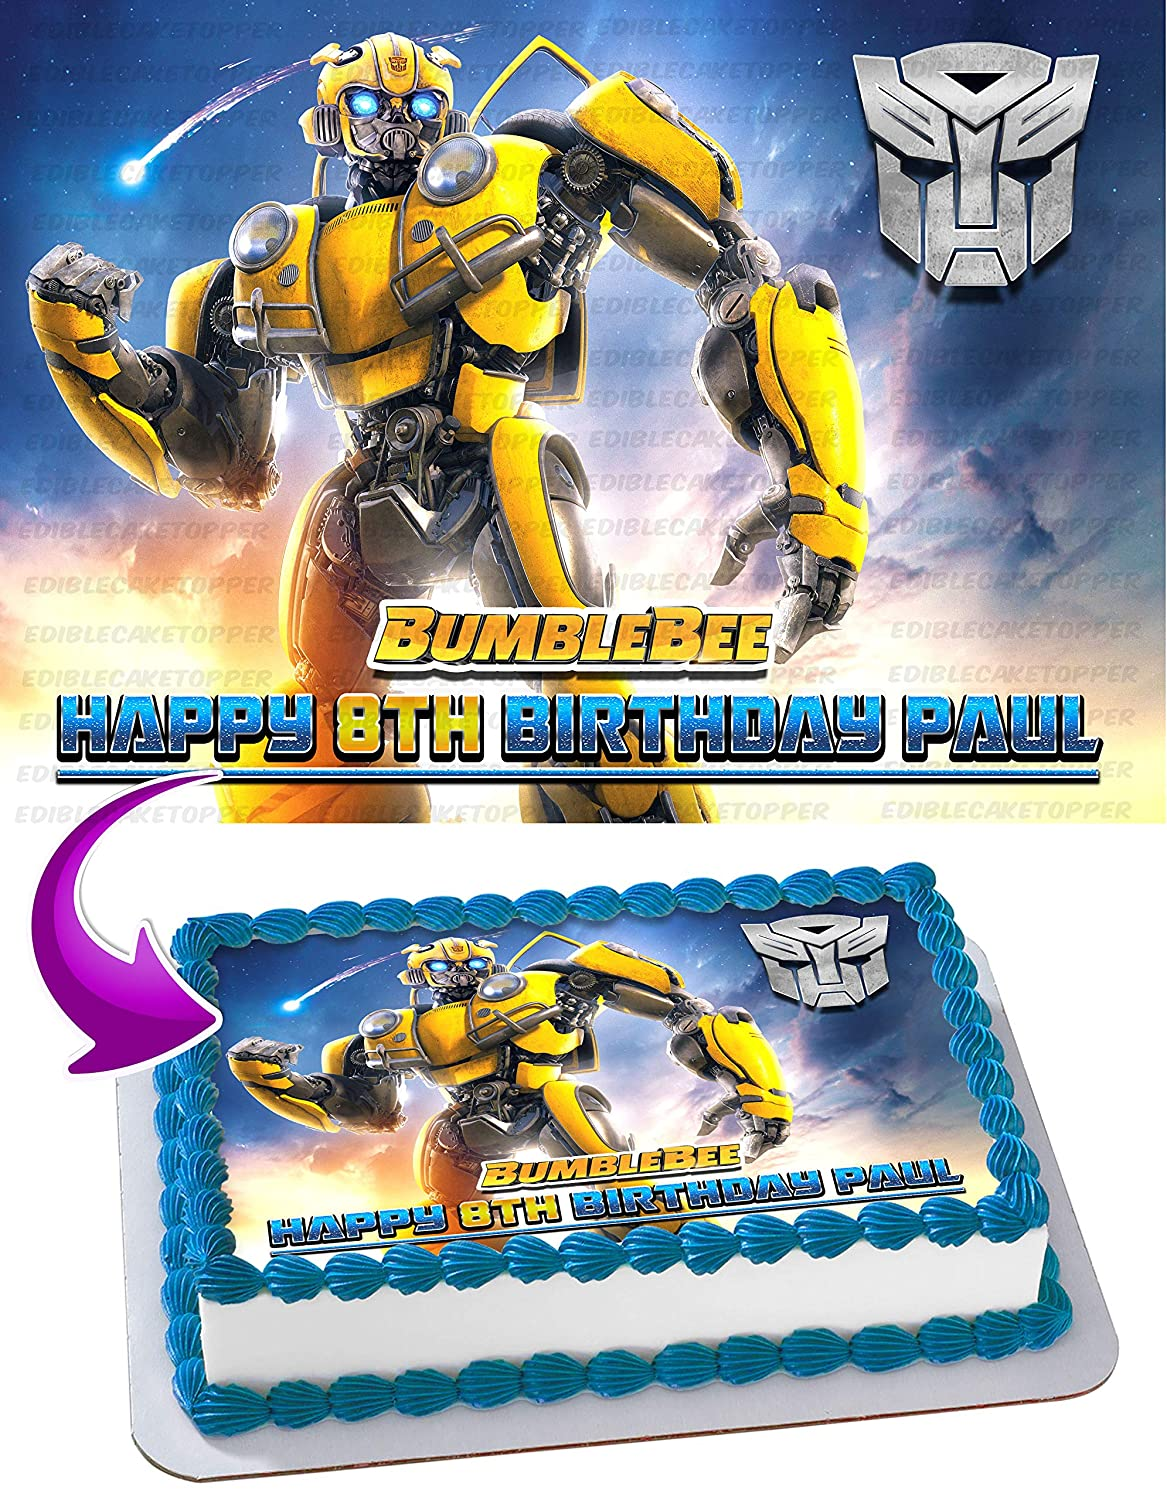 Bumblebee 2019 Transformers Edible Cake Image Topper